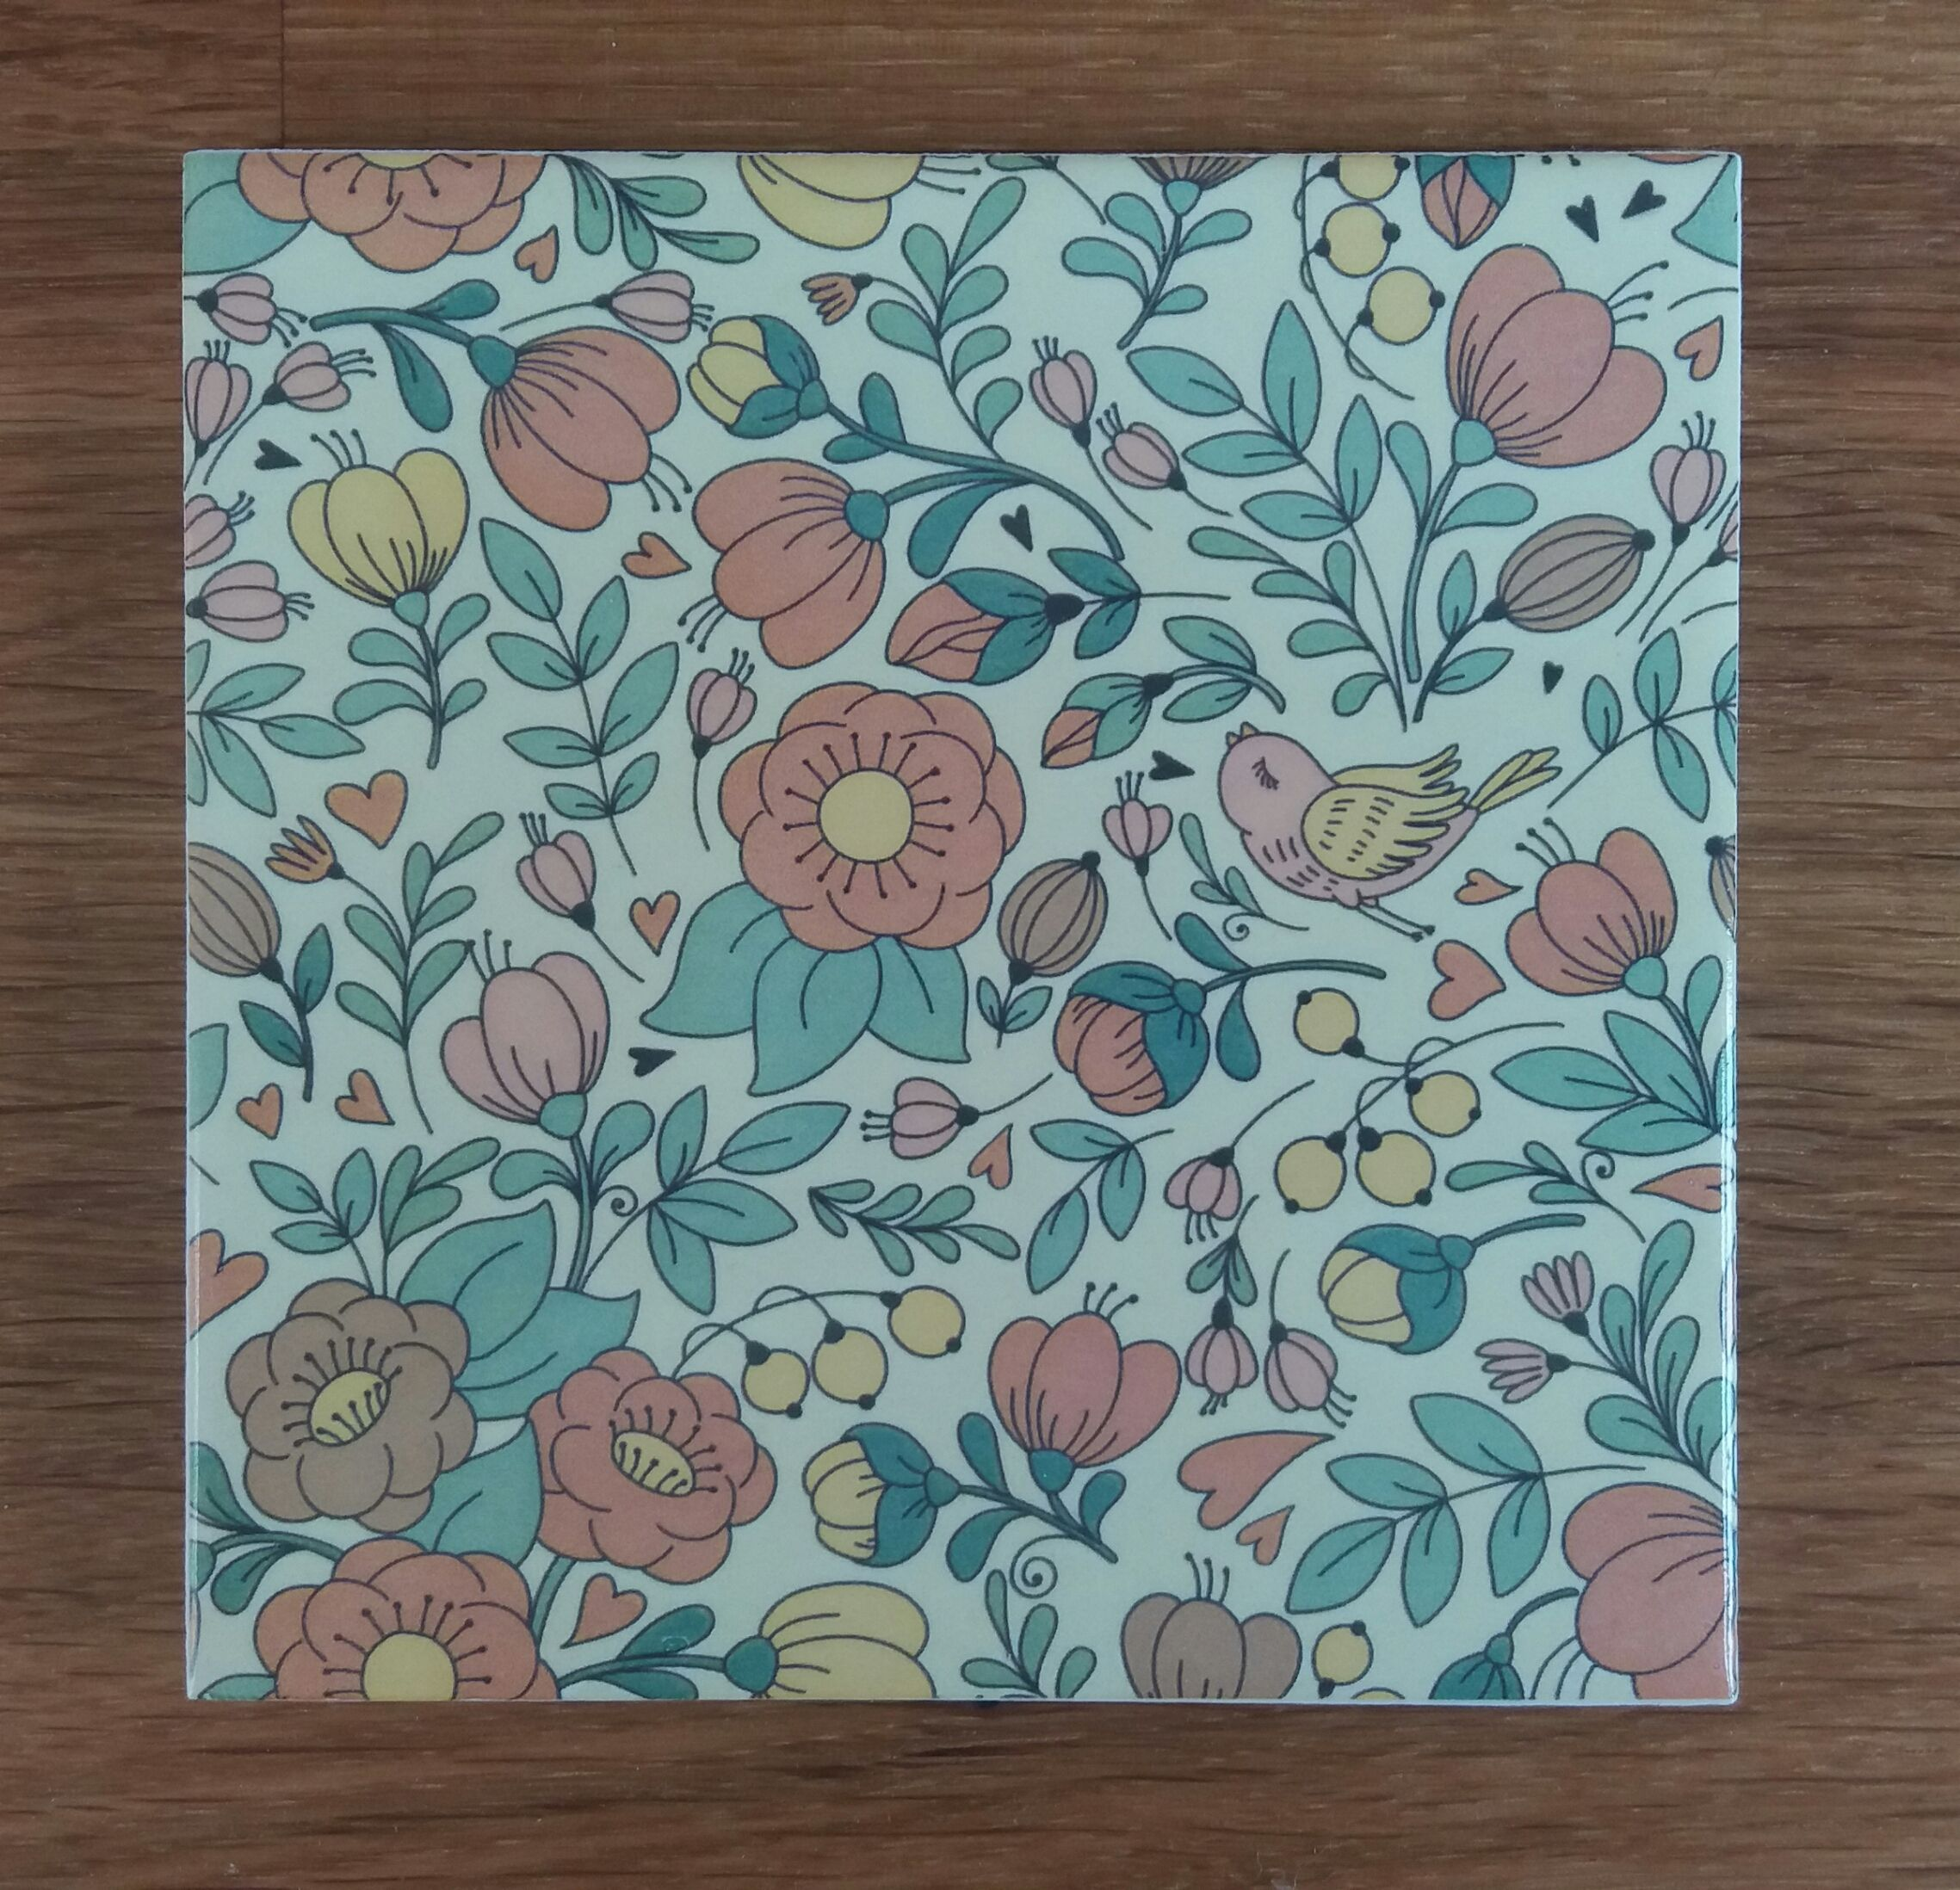 Mid century retro style patterned ceramic wall tile by Floral Tiles ...